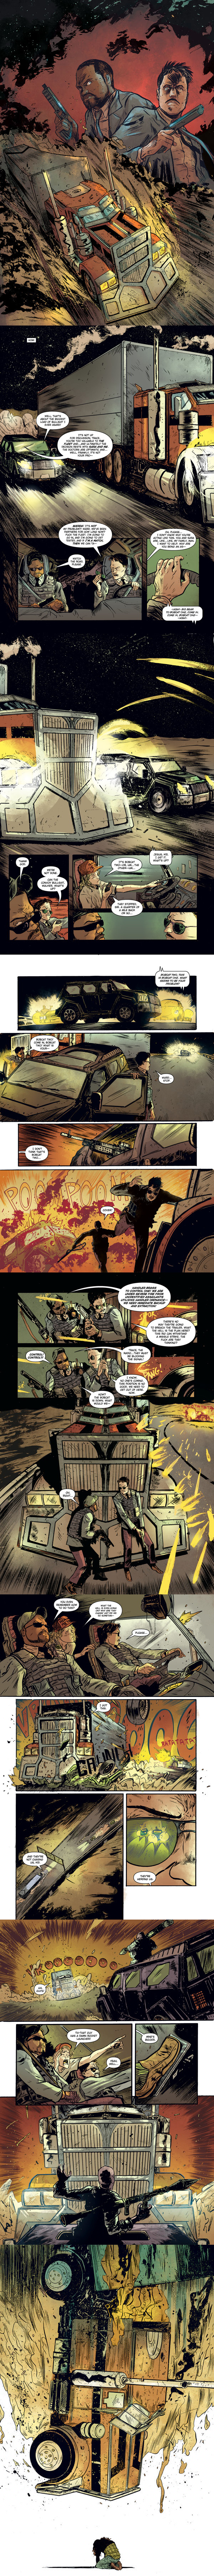 The Ghost Fleet #1 Preview